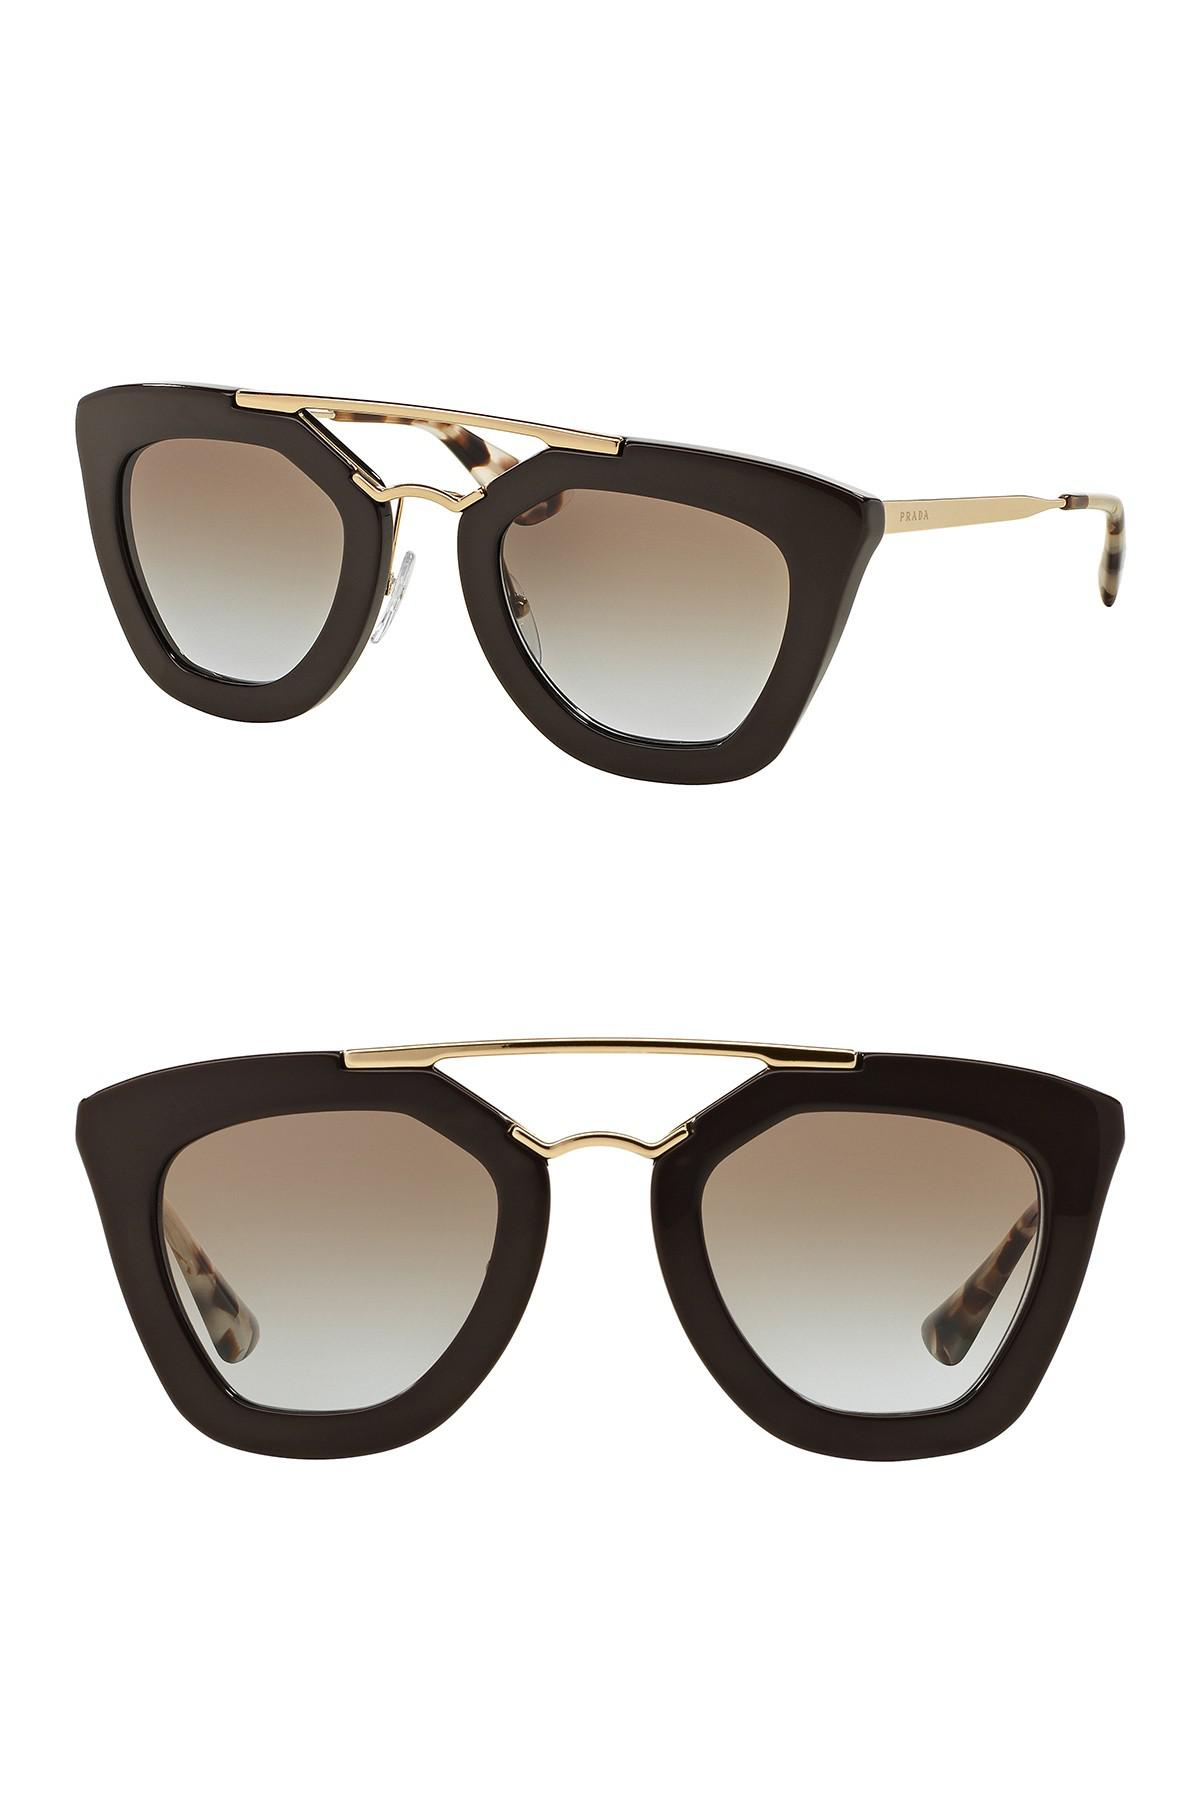 a8e52db4097 ... canada lyst prada catwalk cinema 49mm cat eye sunglasses in brown a0e47  190ee